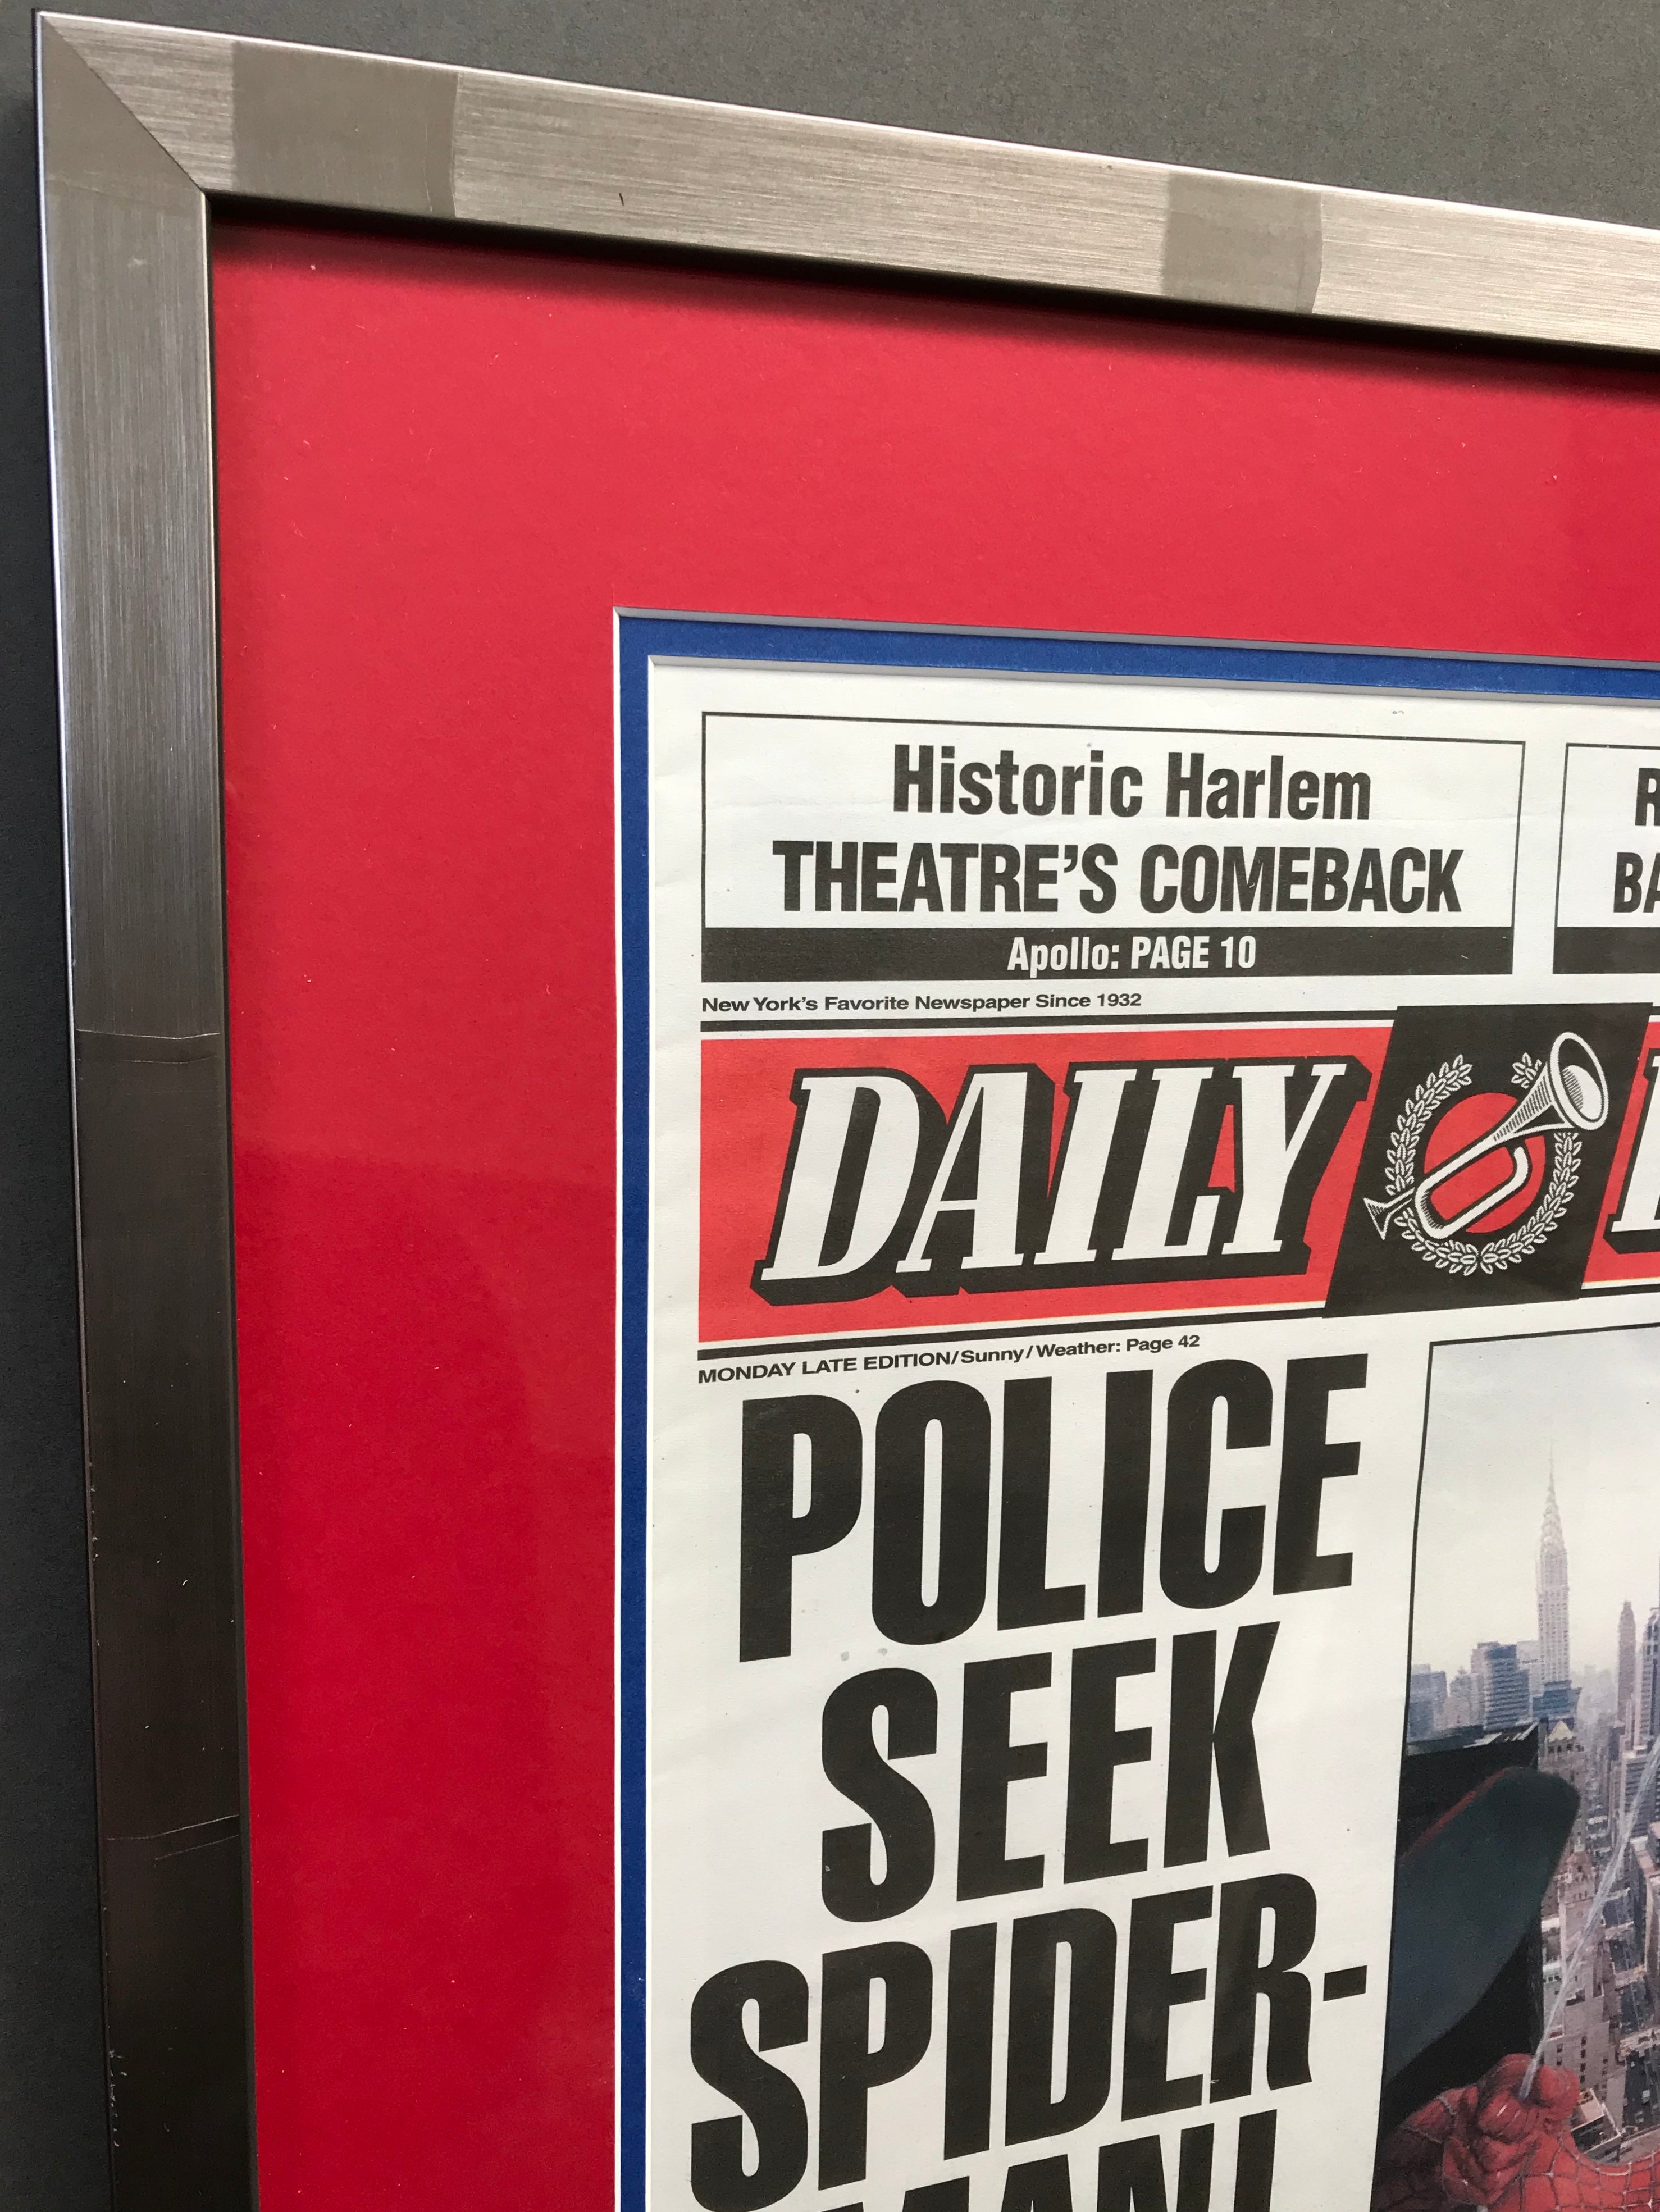 Spider-Man (2002) - Framed Prop 'Daily Bugle' Newspaper (SOLD)